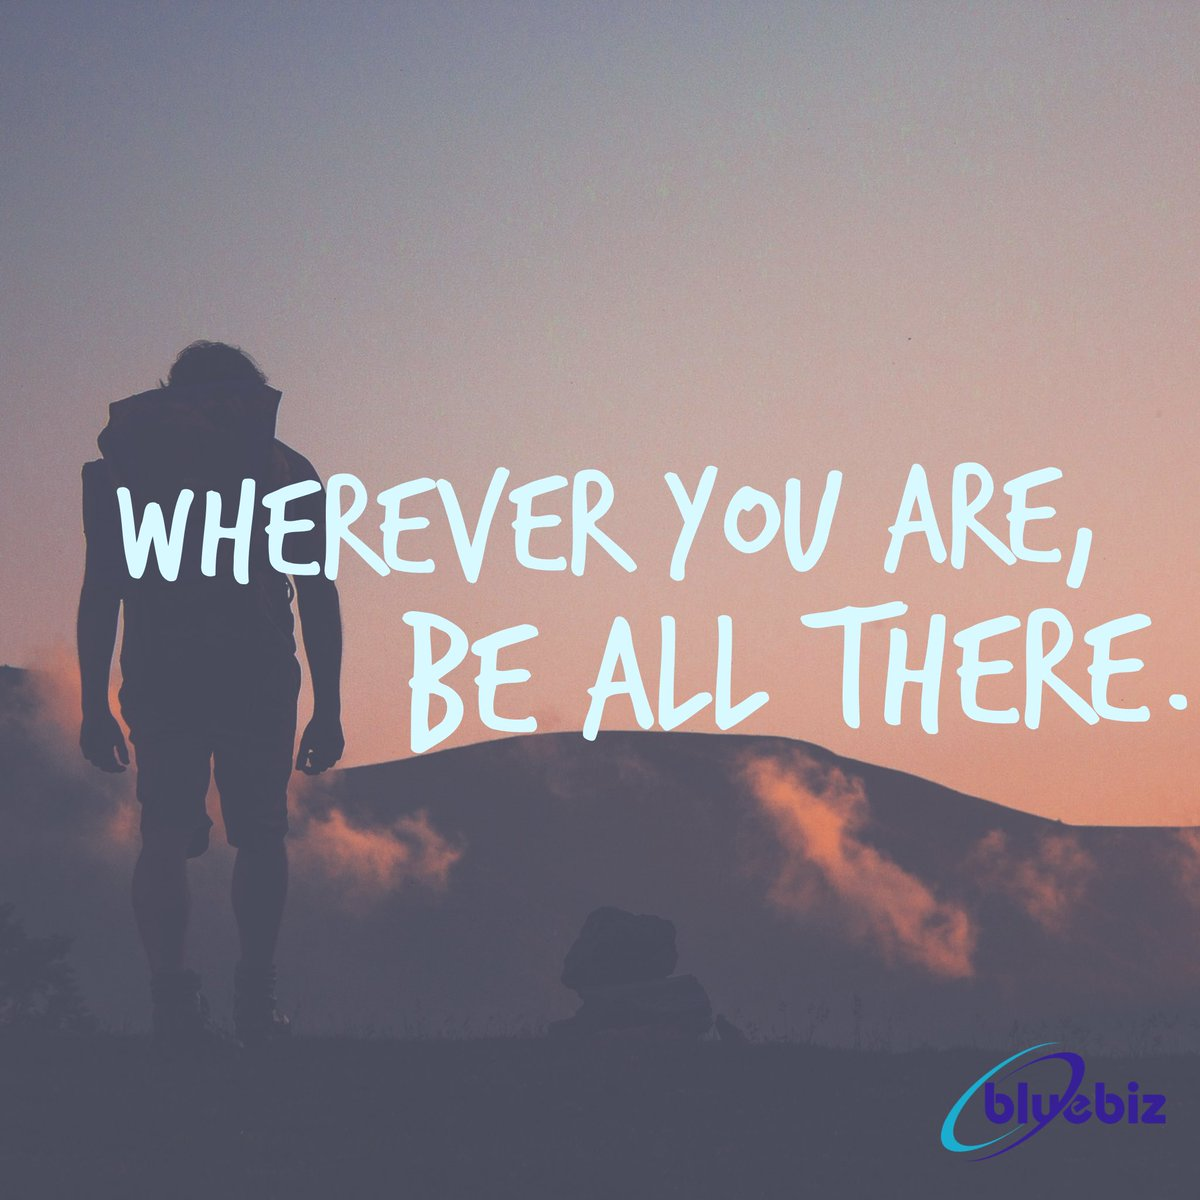 Wherever your are!  #work #life #worklifebalance #digital #consultant #software #iot #travel #quote #sayings #digitalisierung #industrie40<br>http://pic.twitter.com/DjyyO3HSSw